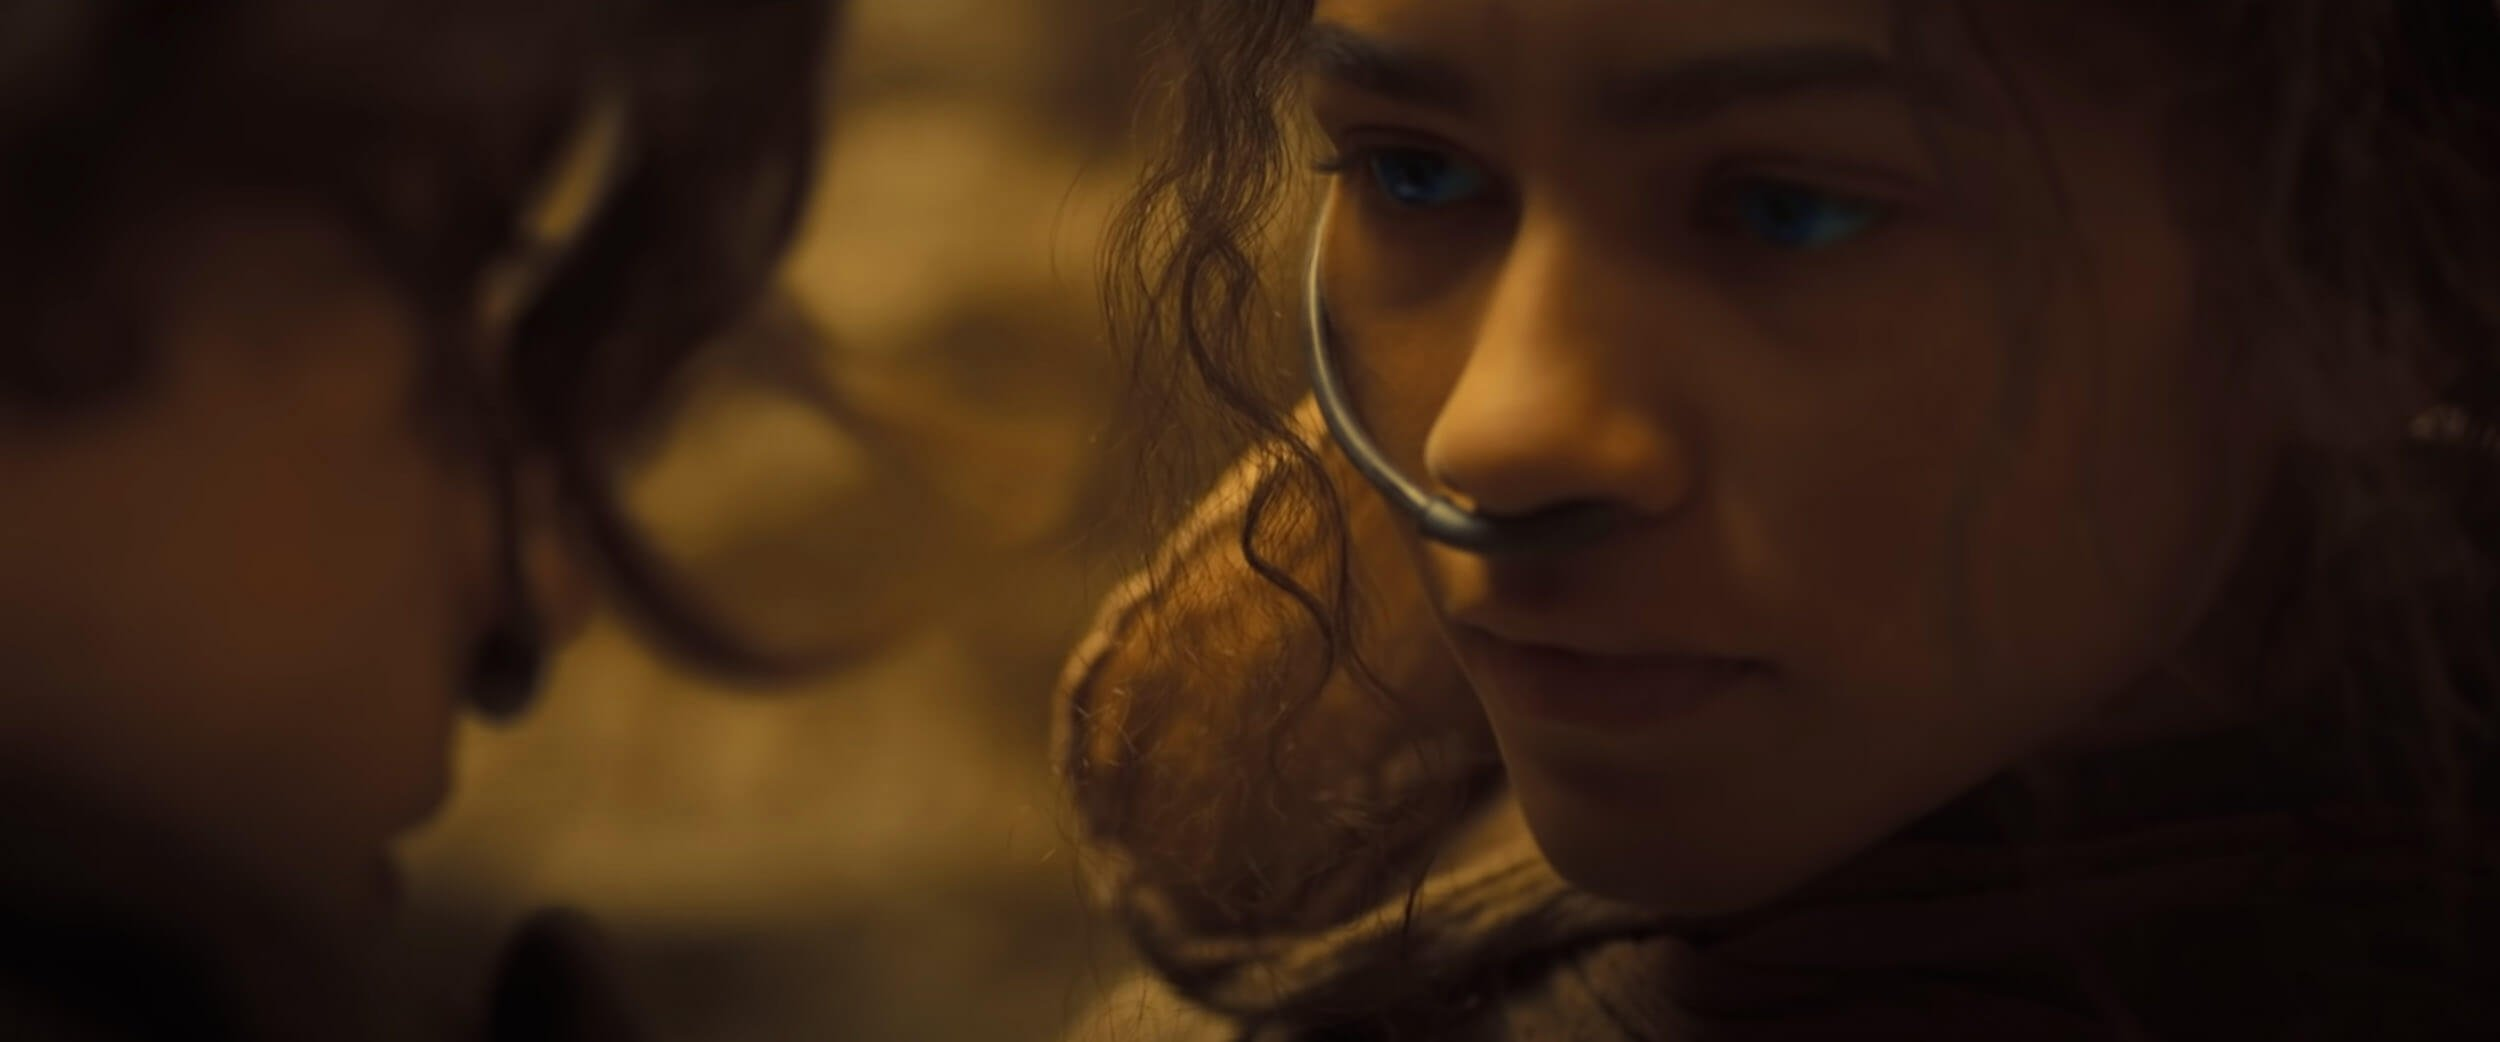 A screengrab from a trailer shows Zendaya in